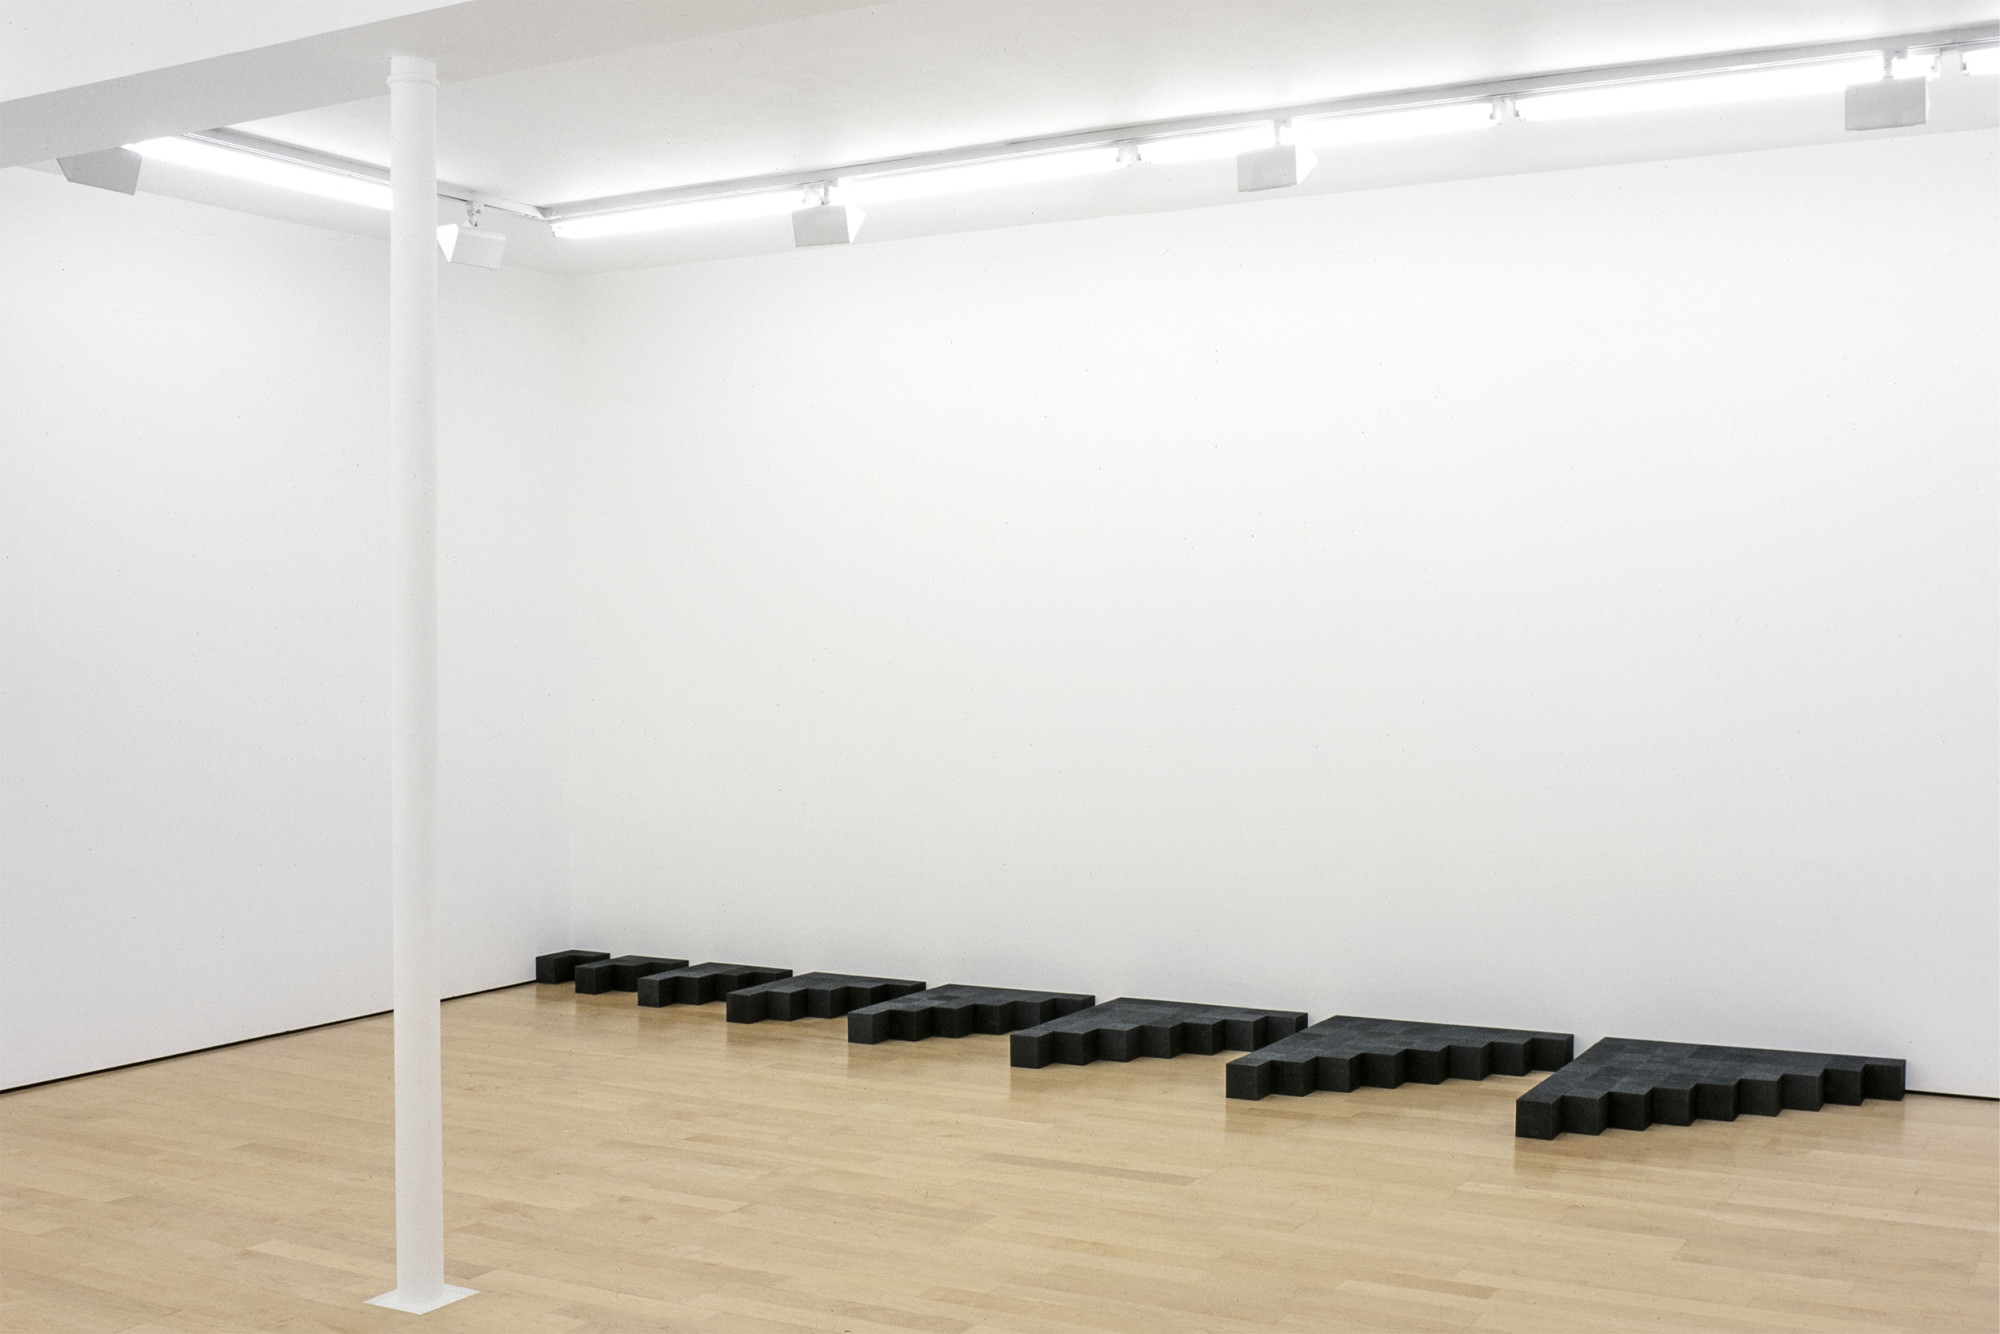 "<div class=""artwork_caption""><p>Installation view, 2006</p></div>"